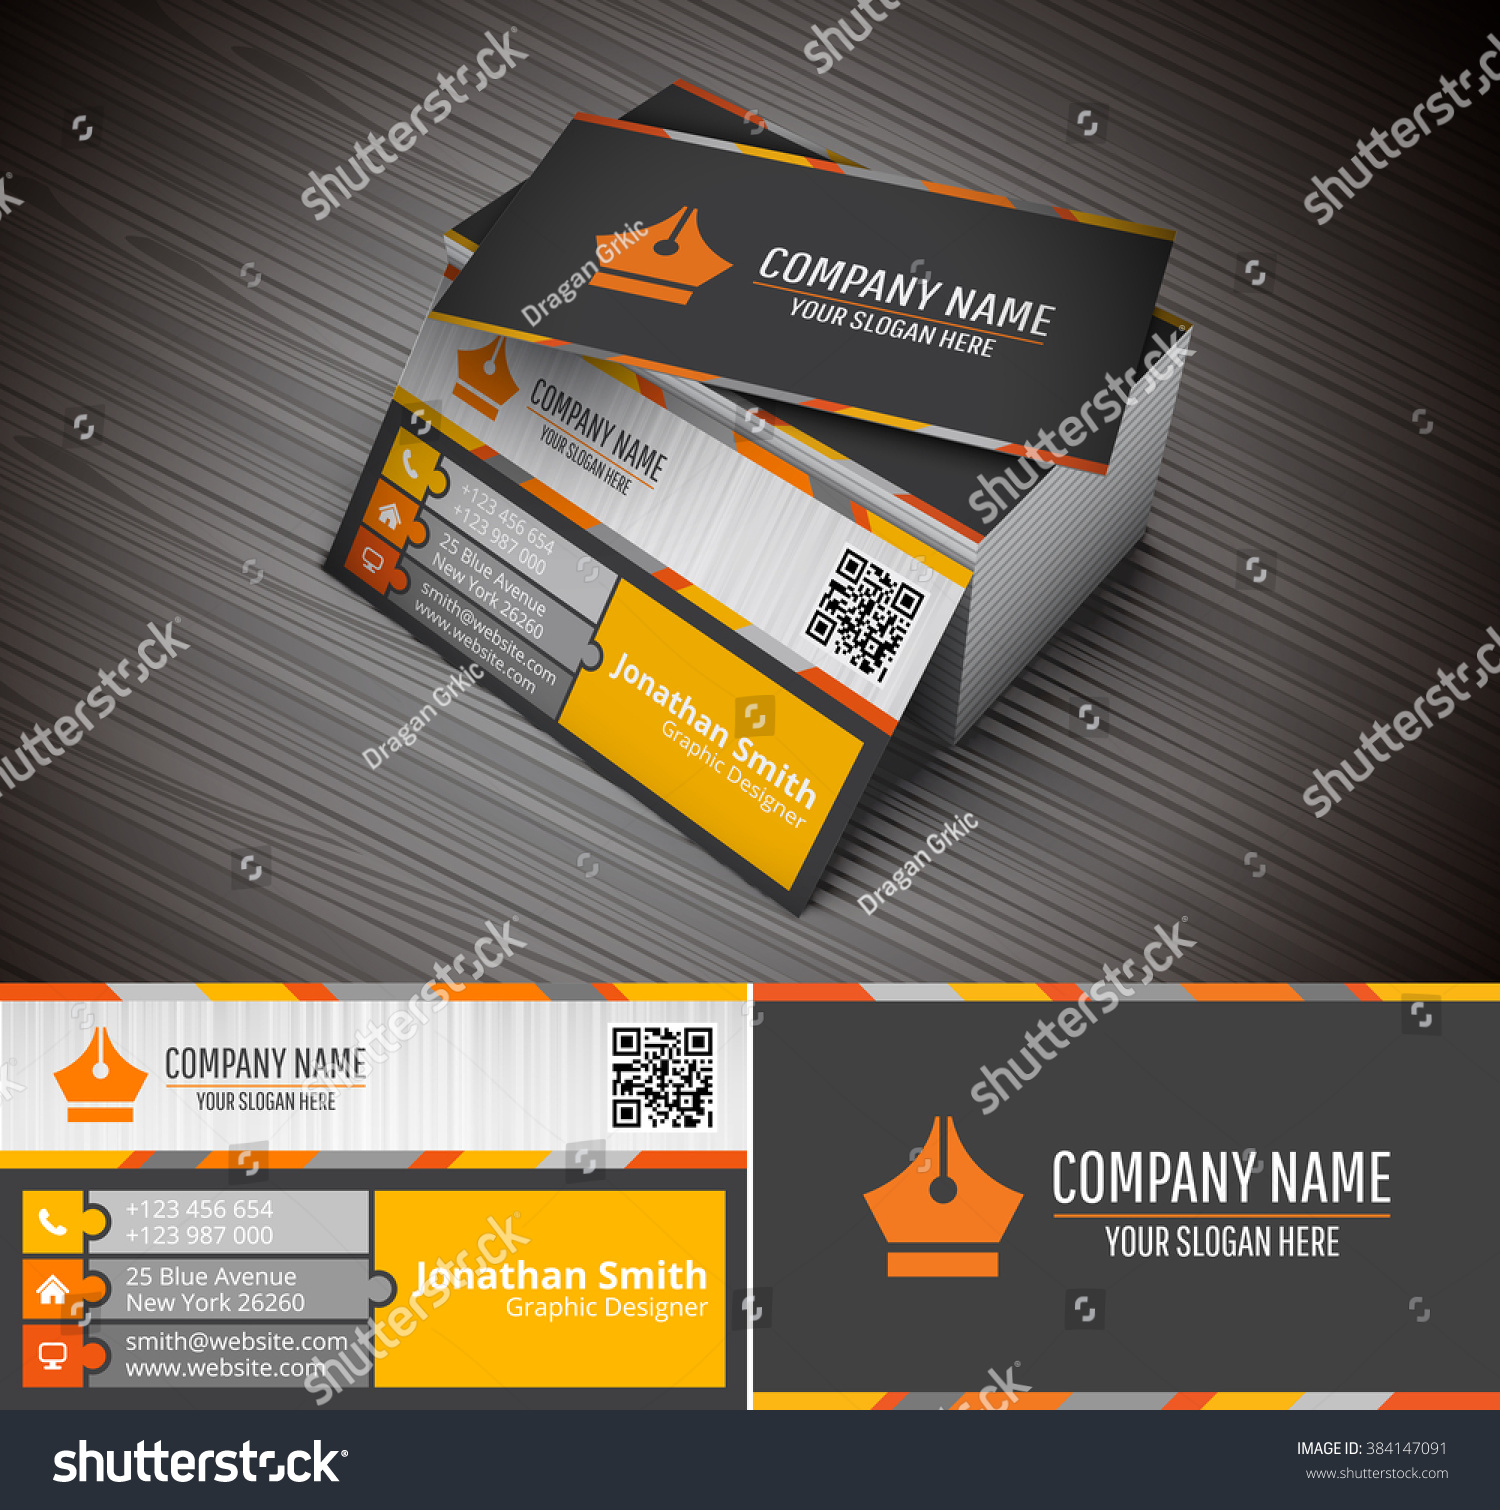 This Creative Business Card Companies Personal Stock Vector ...